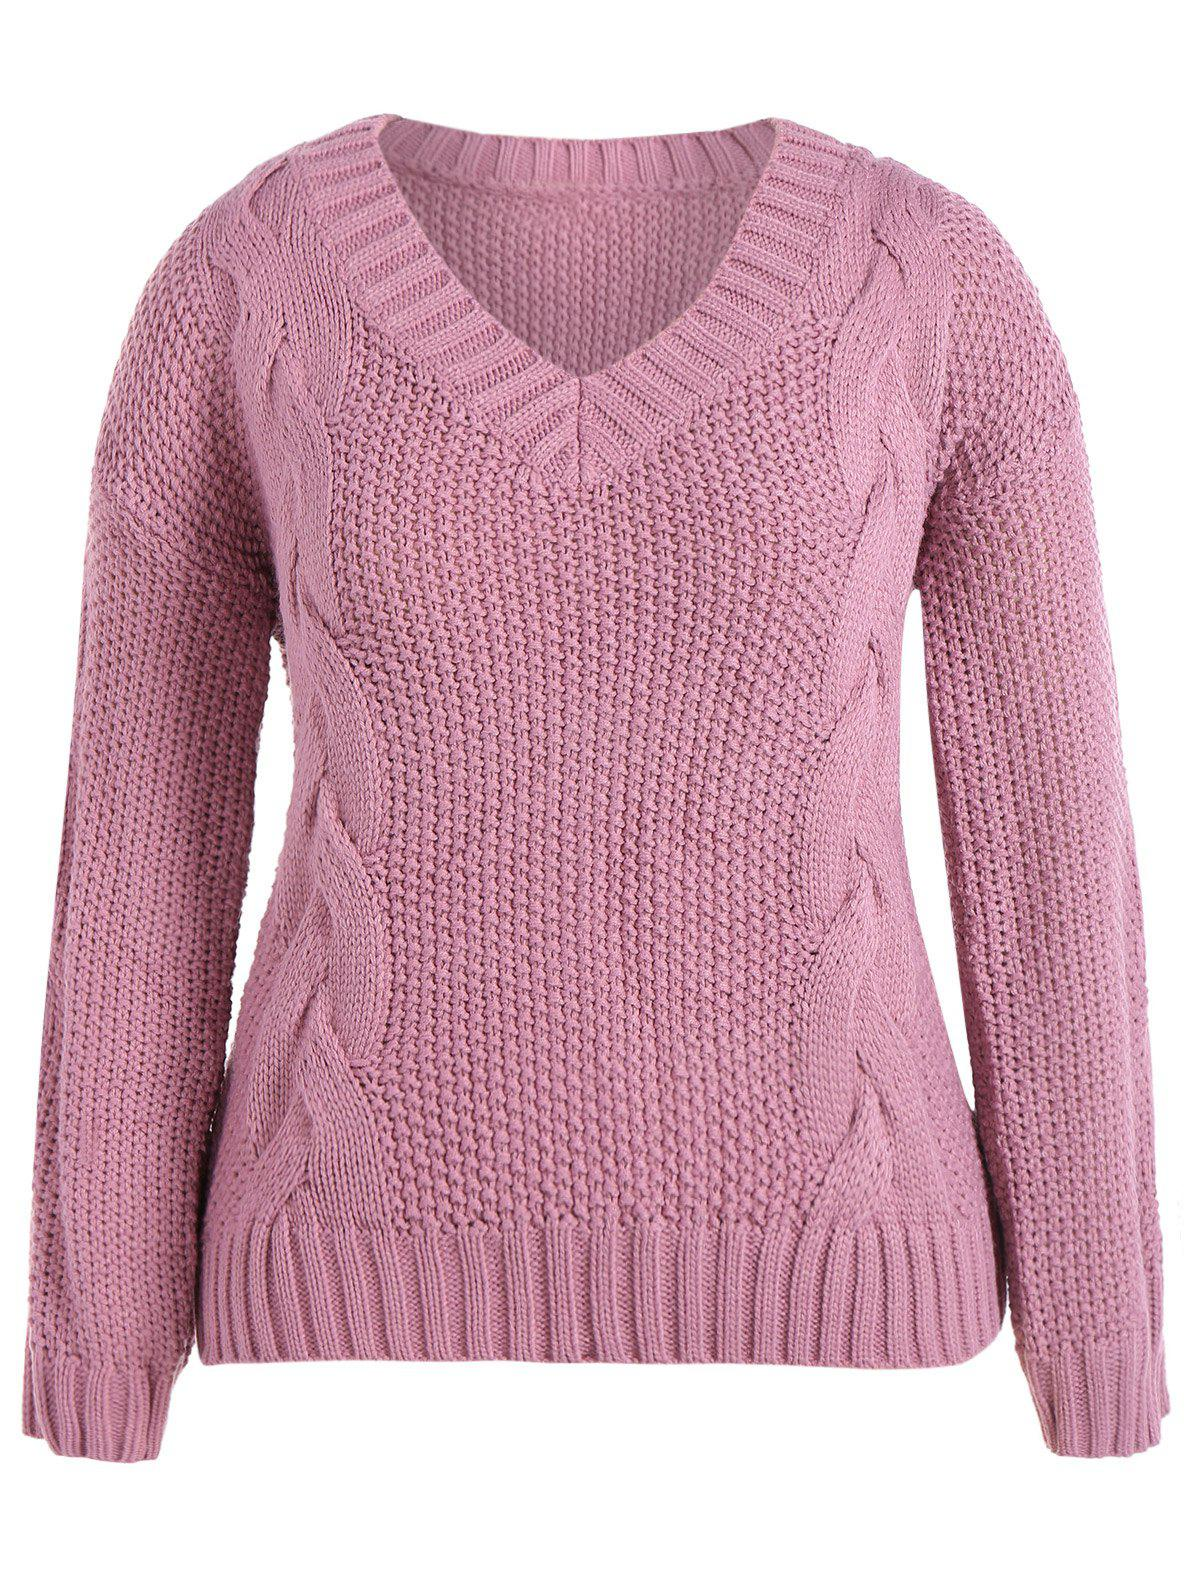 2017 Cable Knit Plus Size Pullover Sweater PINK XL In Plus Size ...